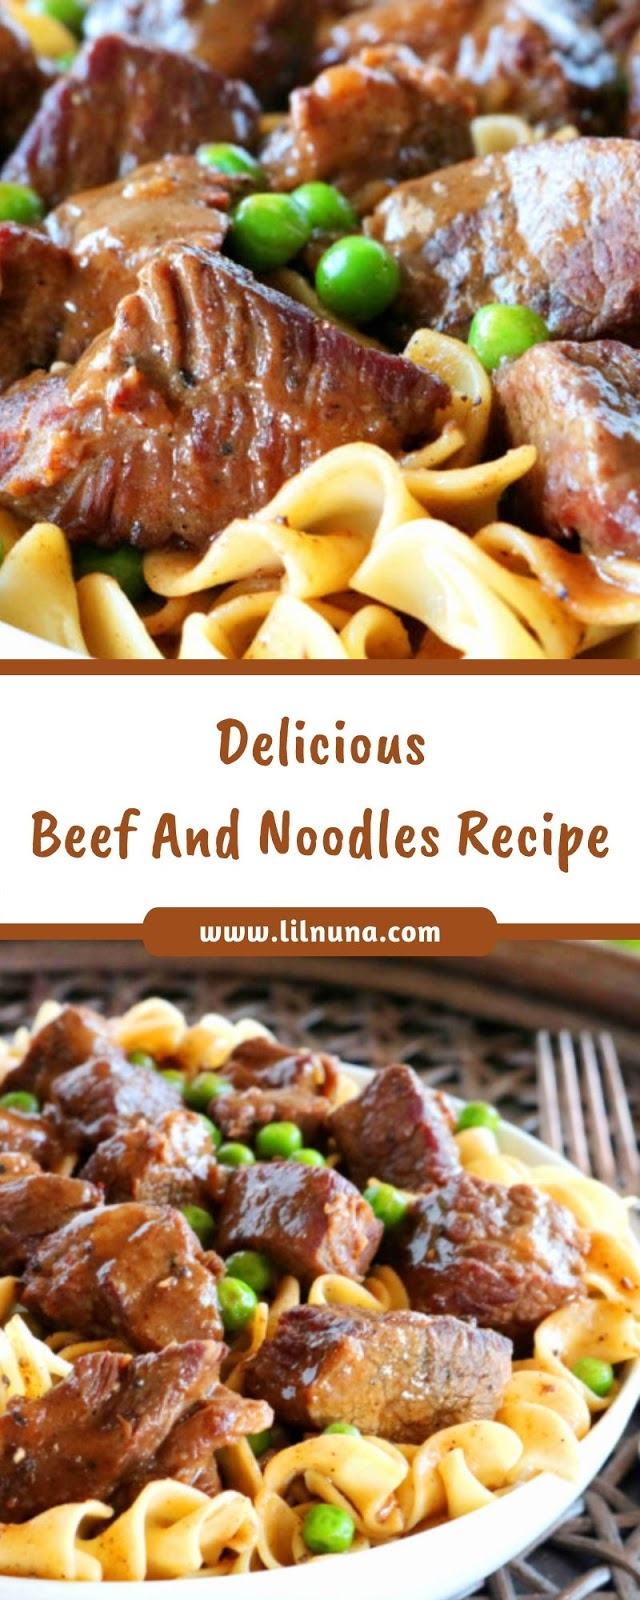 Delicious Beef And Noodles Recipe